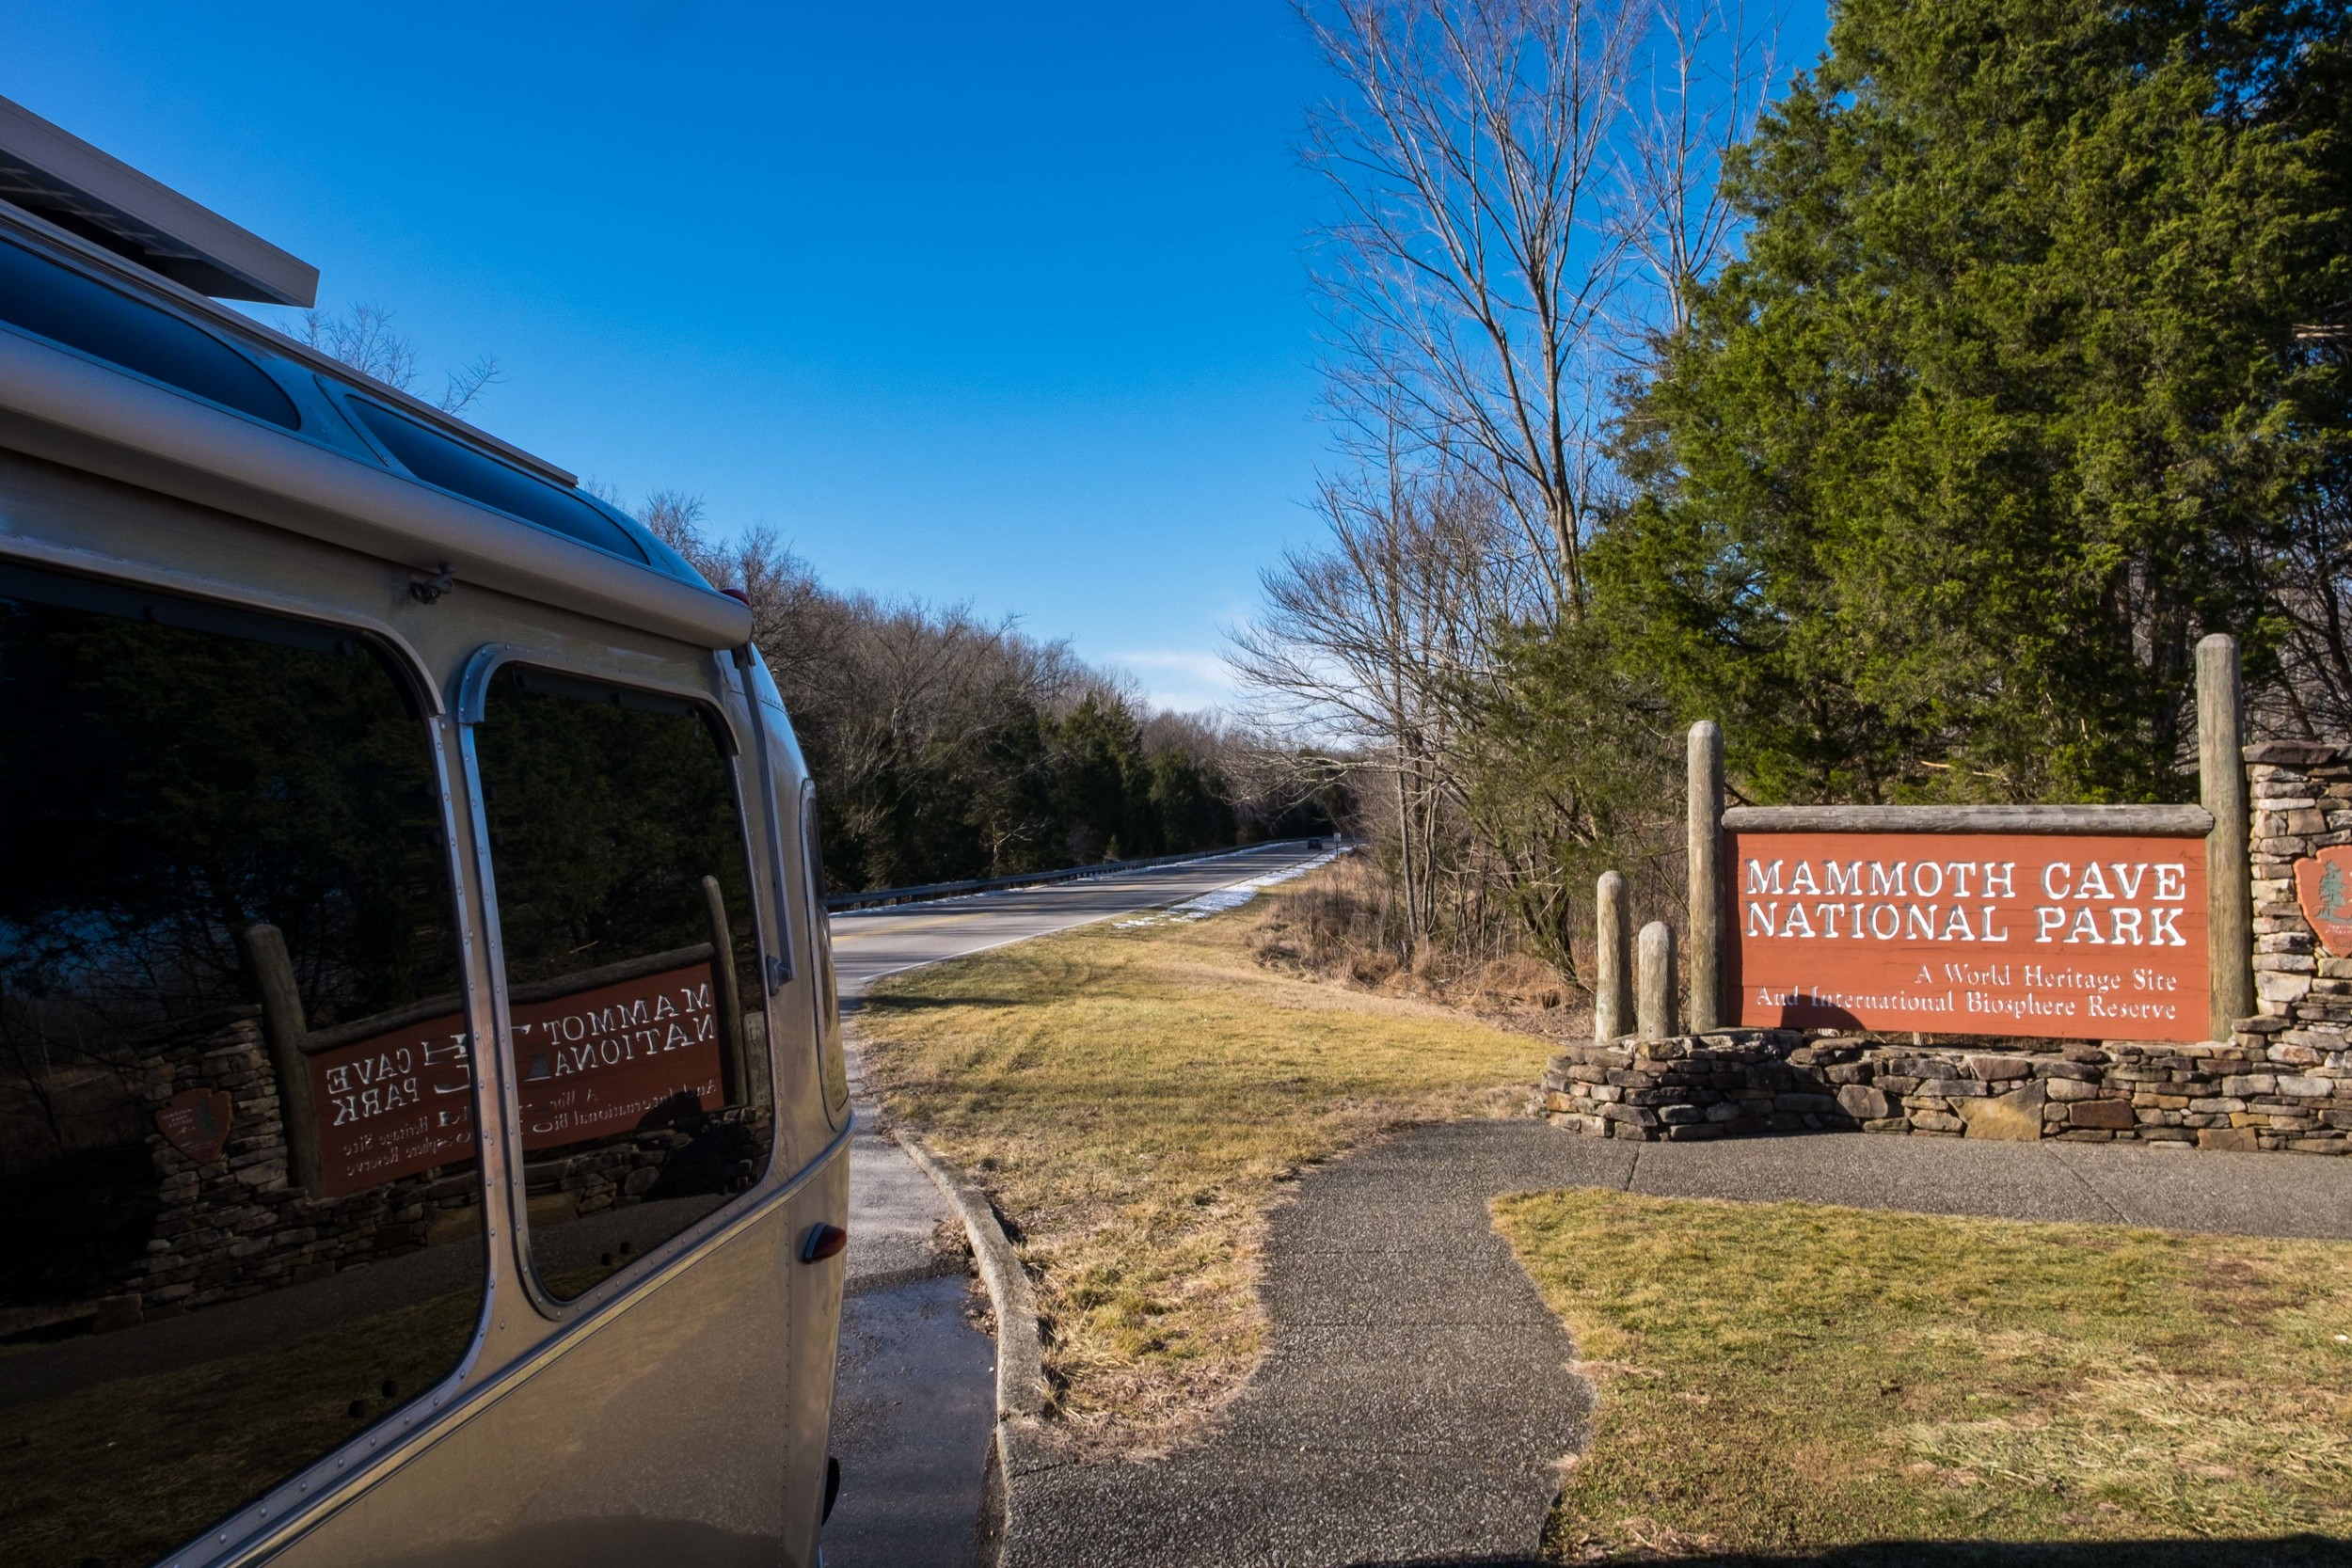 Goodbye Mammoth Cave! We really enjoyed our visit.....such an amazing place. It is truly a natural wonder. Onward!